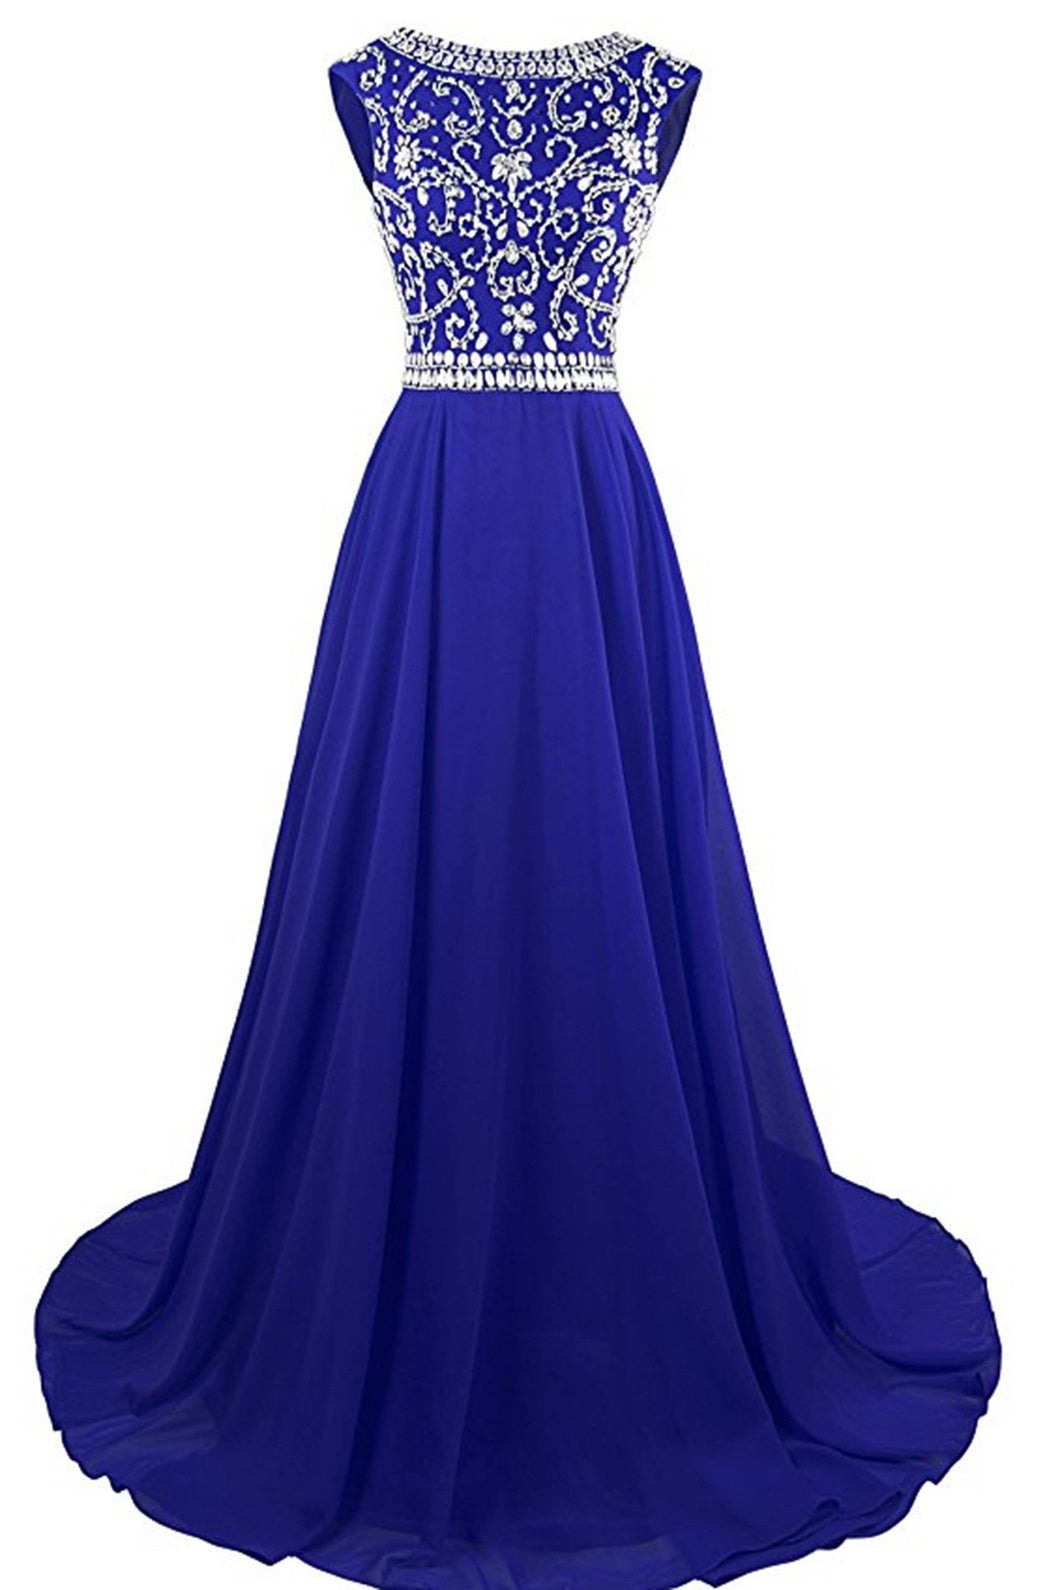 2018 evening gowns - Luxury navy blue chiffon beading rhinestone round neck long formal dresses